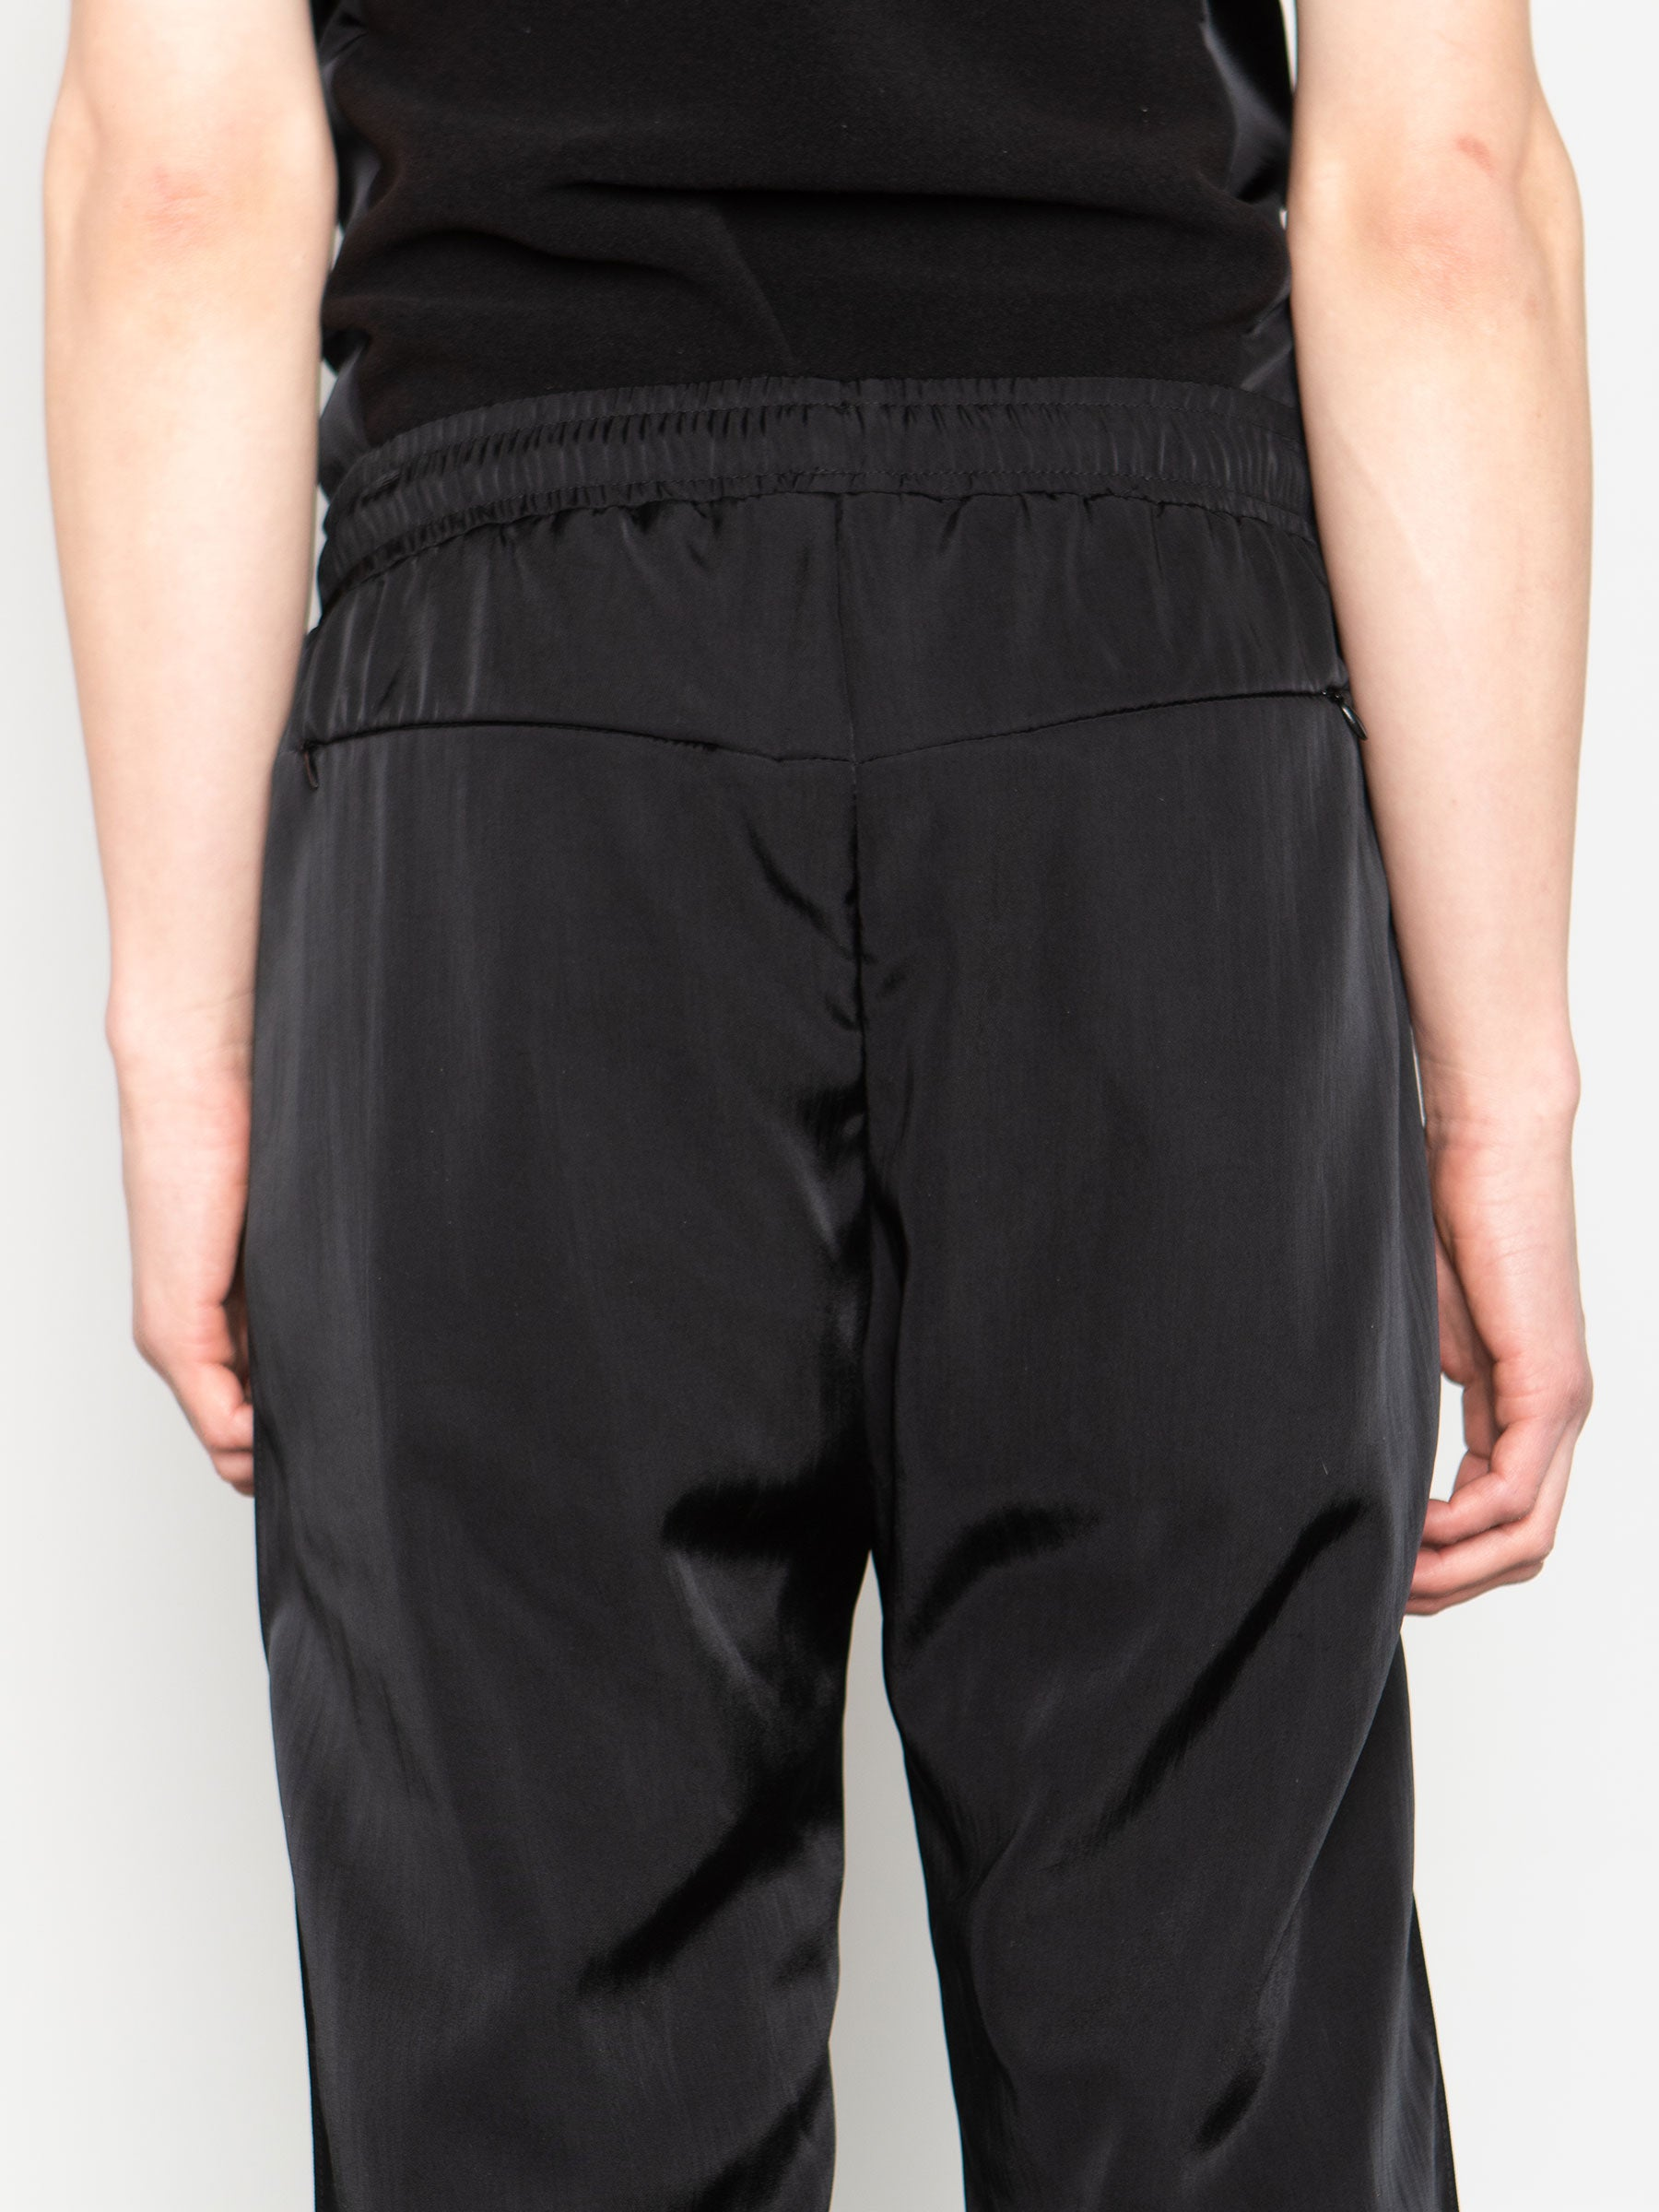 odd92 Shop Cottweiler Spring/Summer 2020 Menswear Black Caddie Track Pants - 5